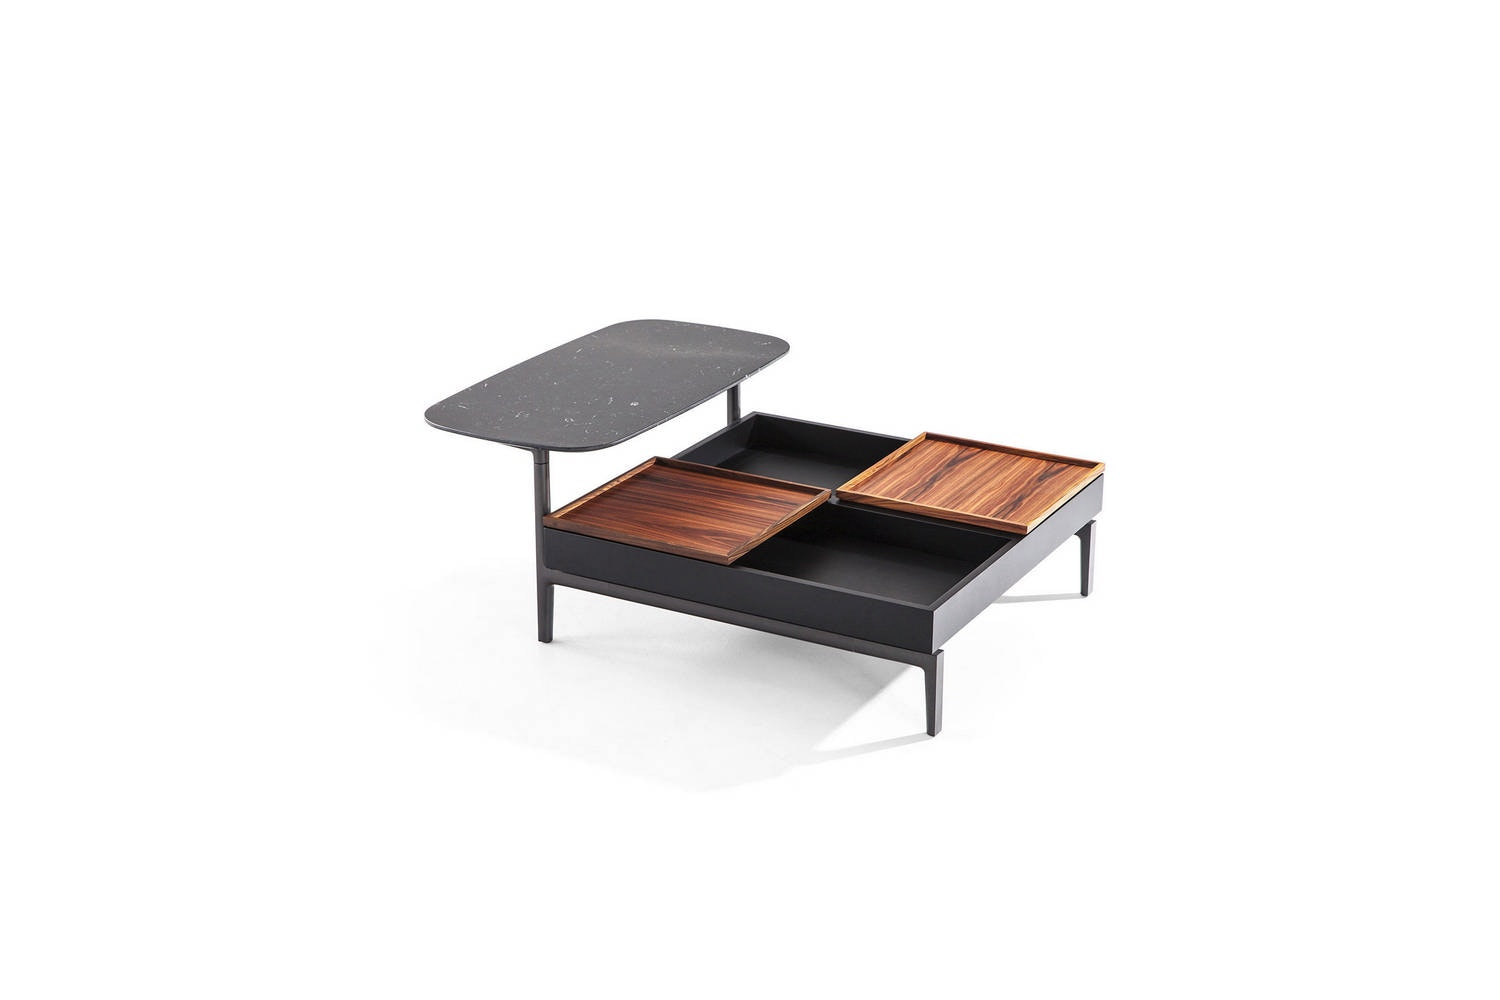 249 Volage EX-S Coffee Table by Philippe Starck for Cassina